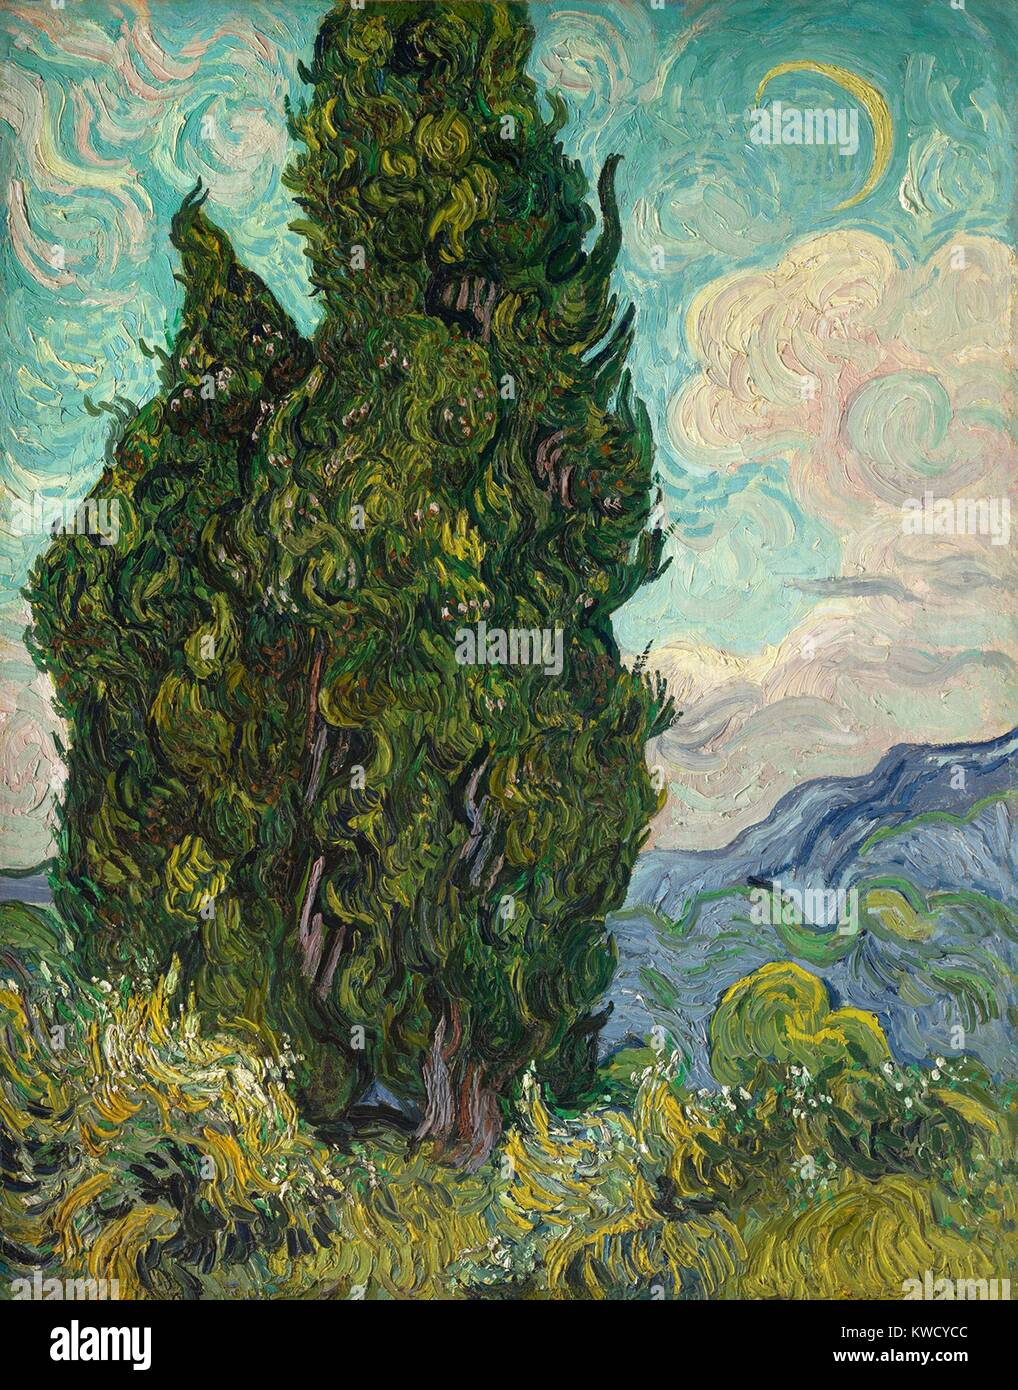 Cypresses, by Vincent Van Gogh, 1889, Dutch Post-Impressionist, oil on canvas. Van Gogh described the cypress as - Stock Image